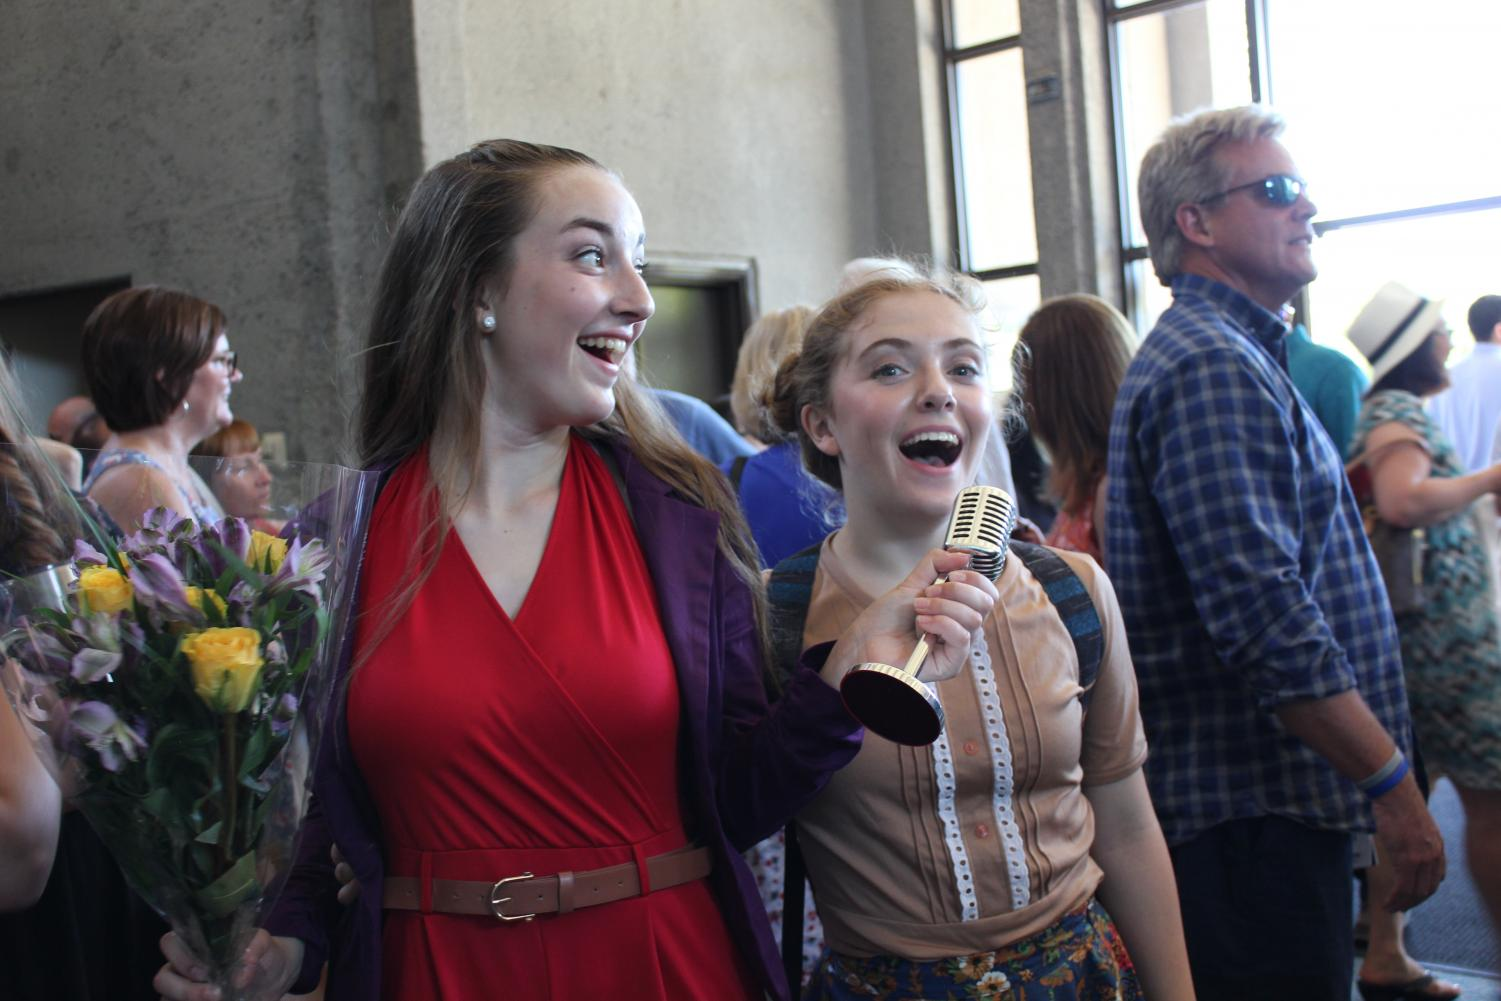 Sophomore Maddie Harris, left, sings with her theater group, Grand Performance Arts in Livermore. Harris recently self-produced a documentary about her theatre company and the heroes in it for the PTA Reflections contest.